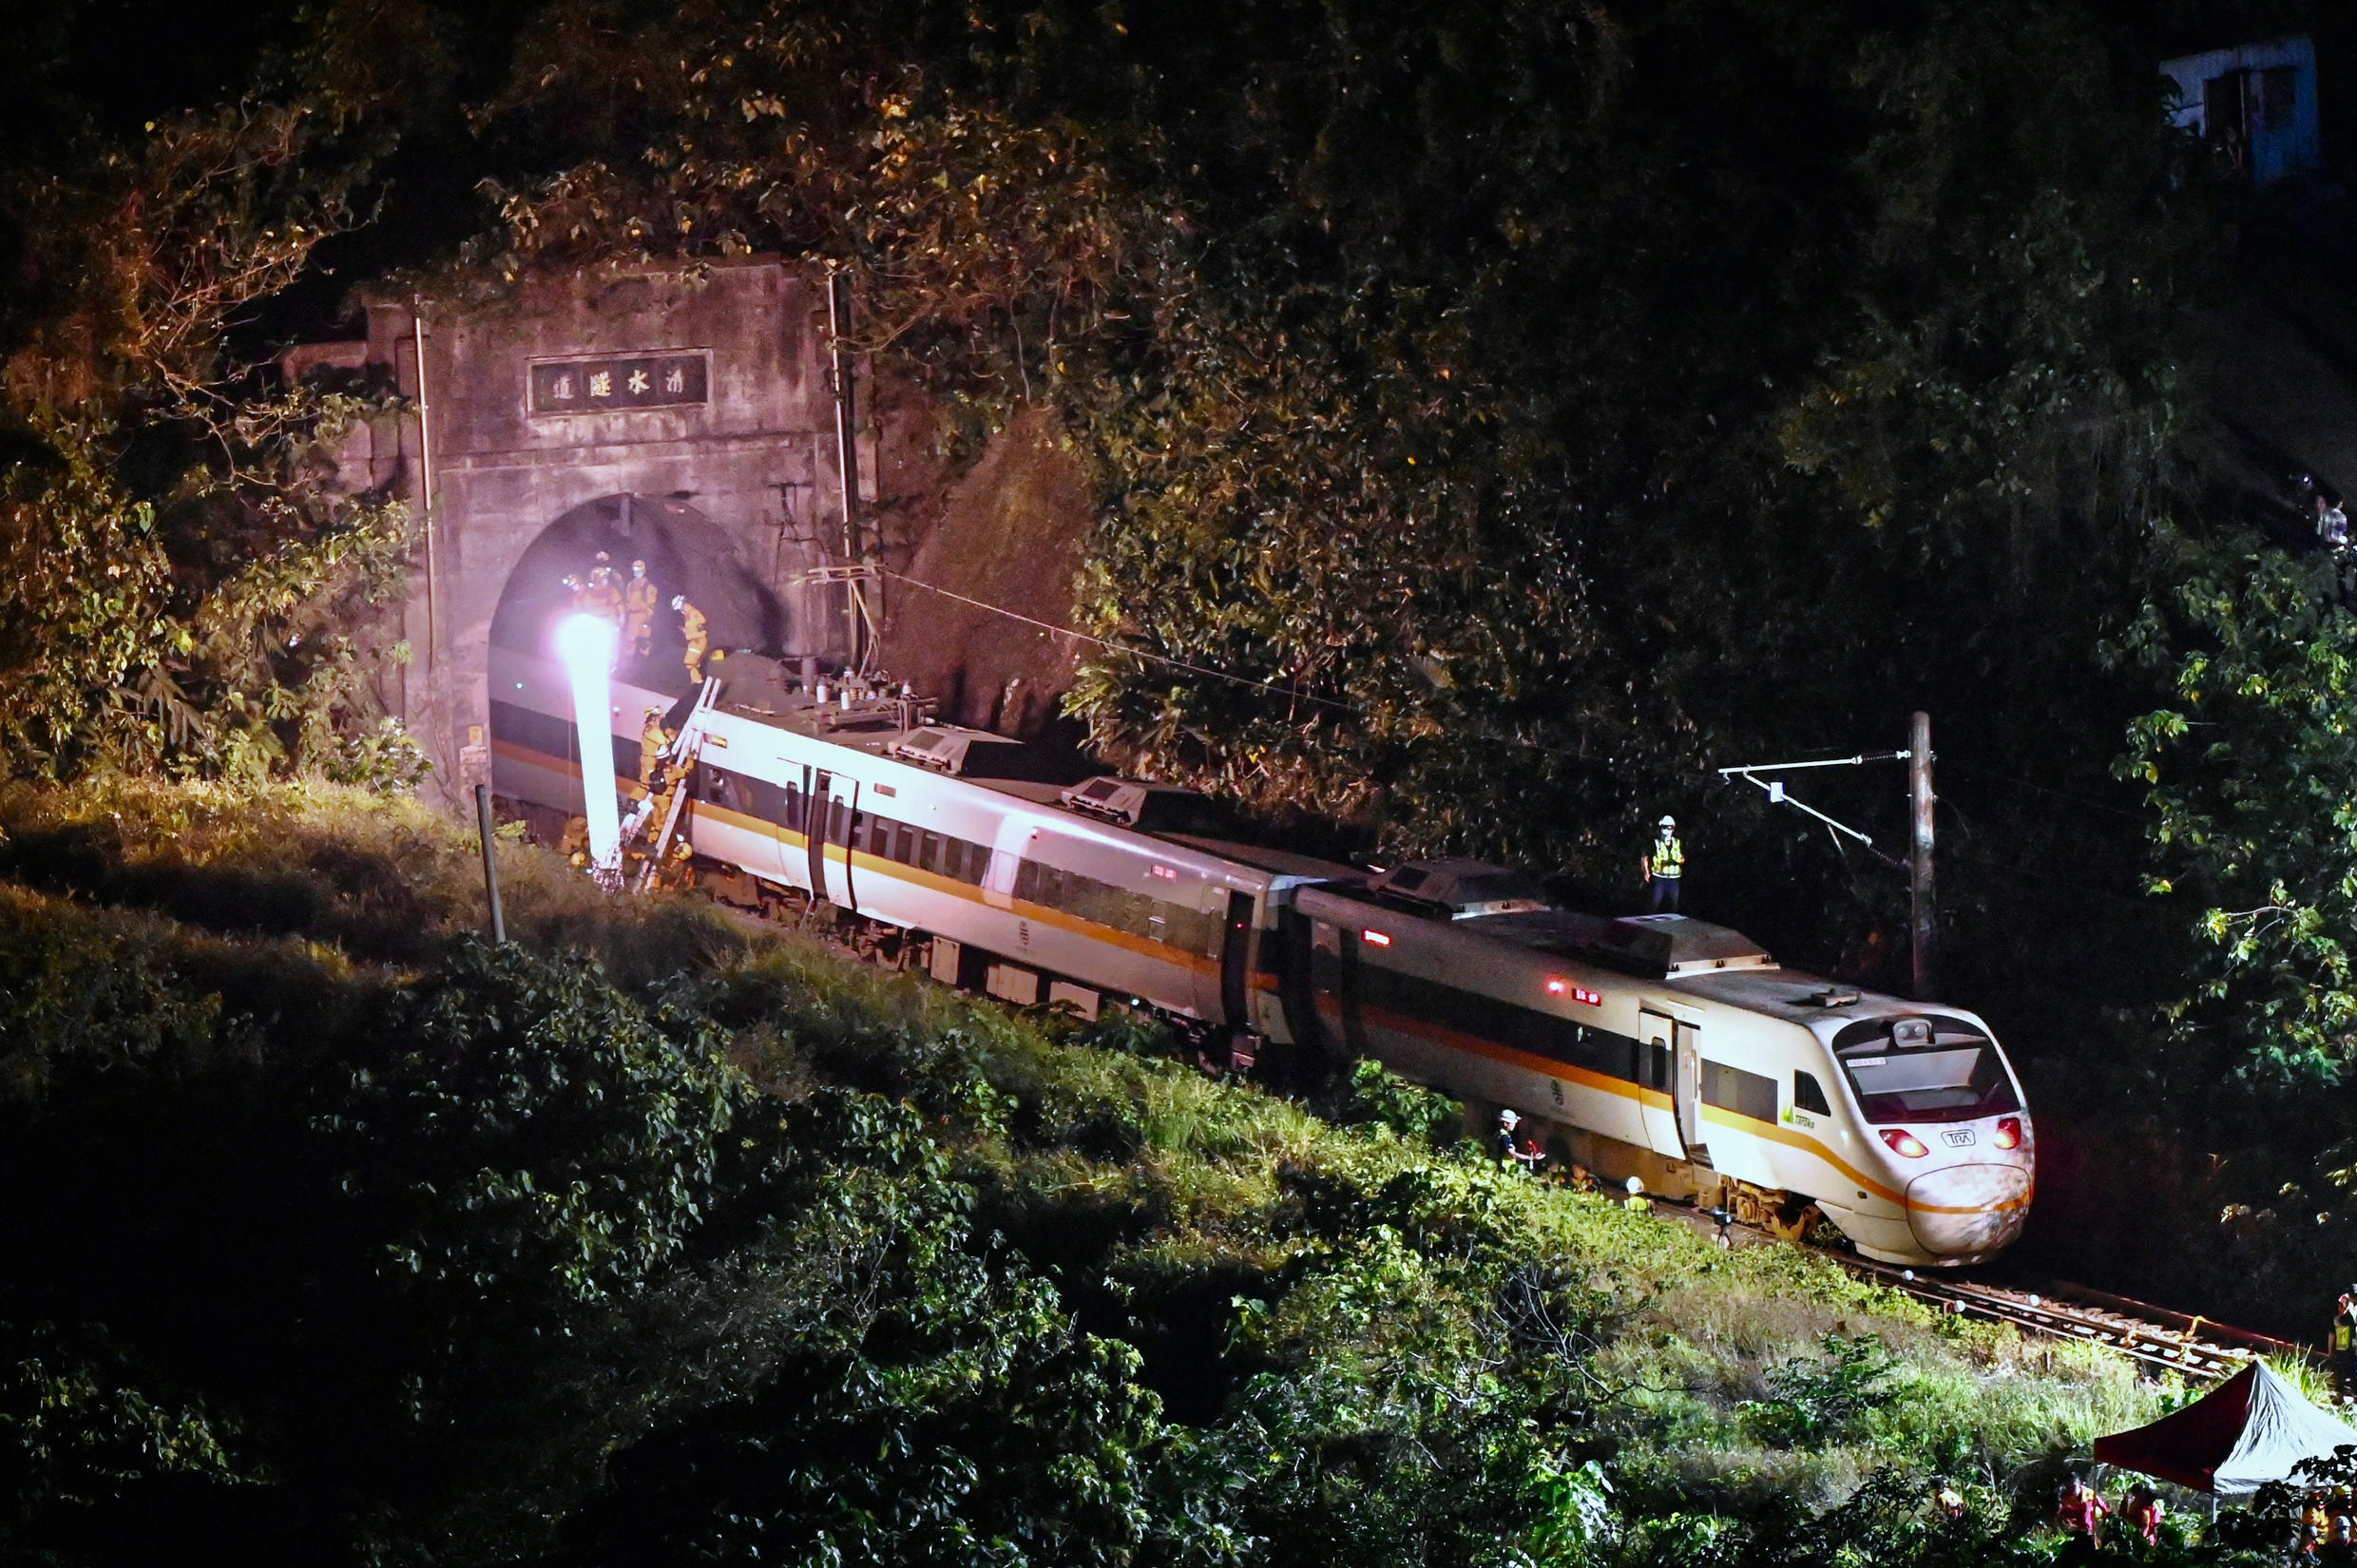 At least 50 people were killed in Taiwan's worst rail disaster in decades